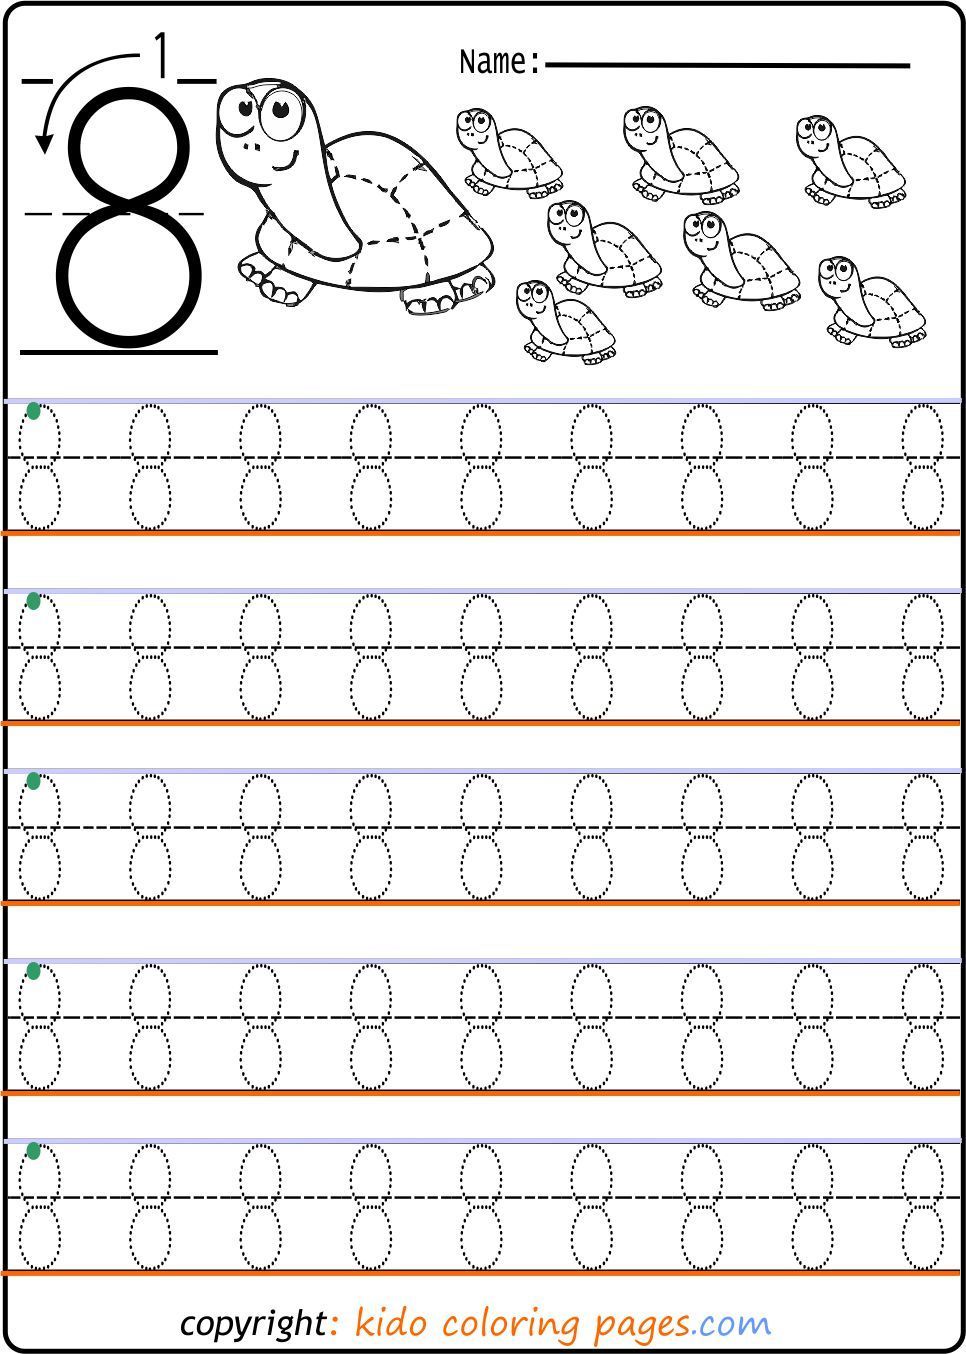 Number Tracing Worksheets Archives Kids Coloring Pageskids Coloring Pages Tracing Worksheets Numbers Kindergarten Kindergarten Worksheets Printable